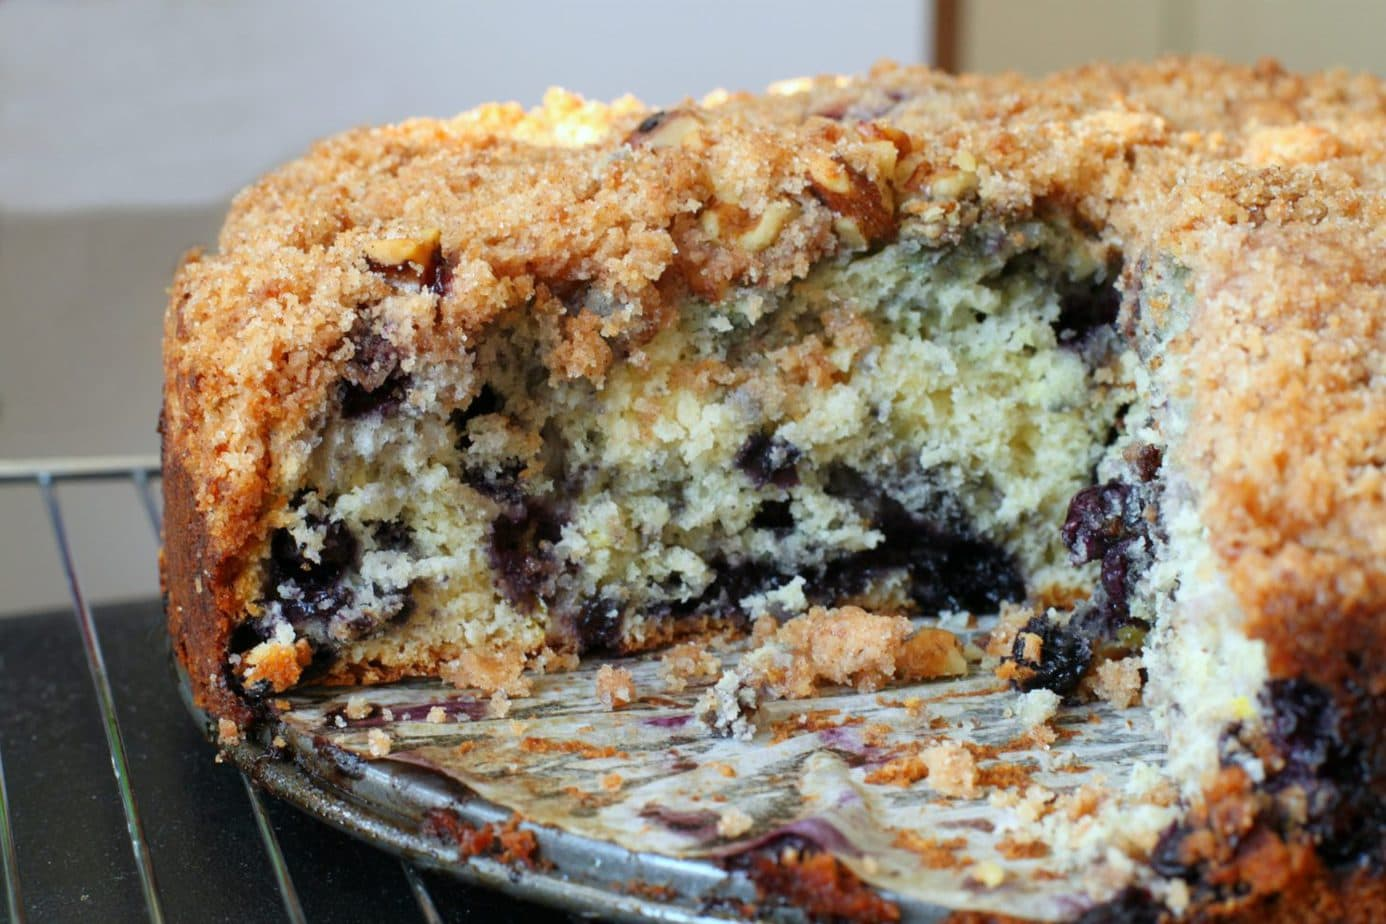 A crumbly cake full of juicy blueberries